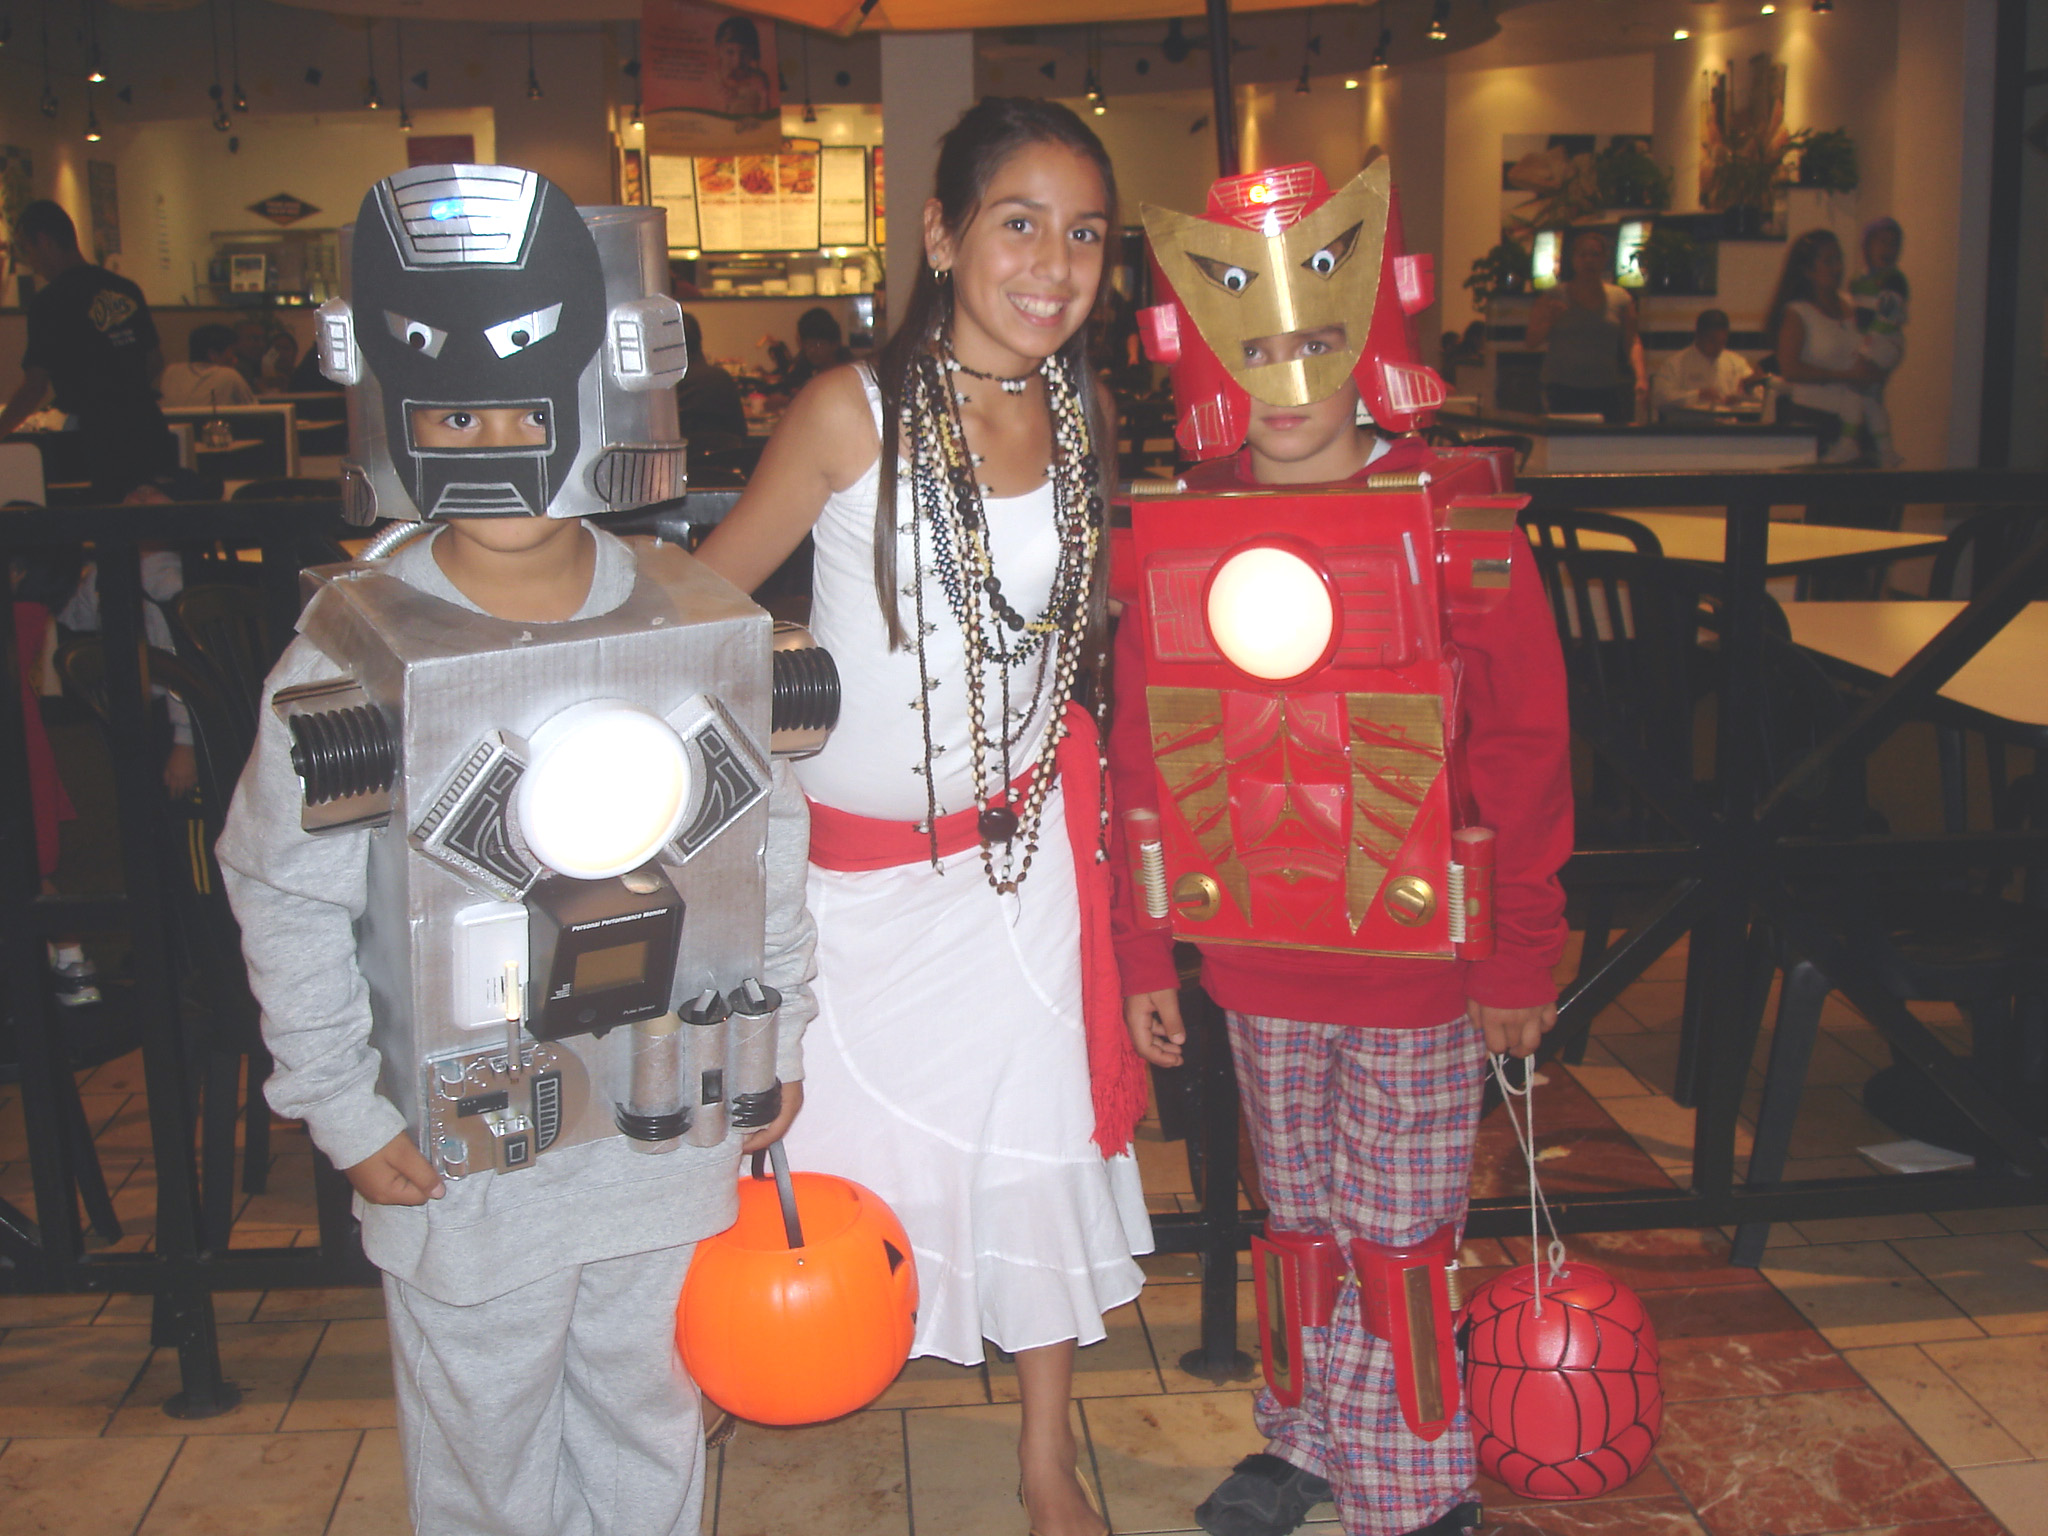 Picture of Cardboard Iron Man Costumes on a Budget